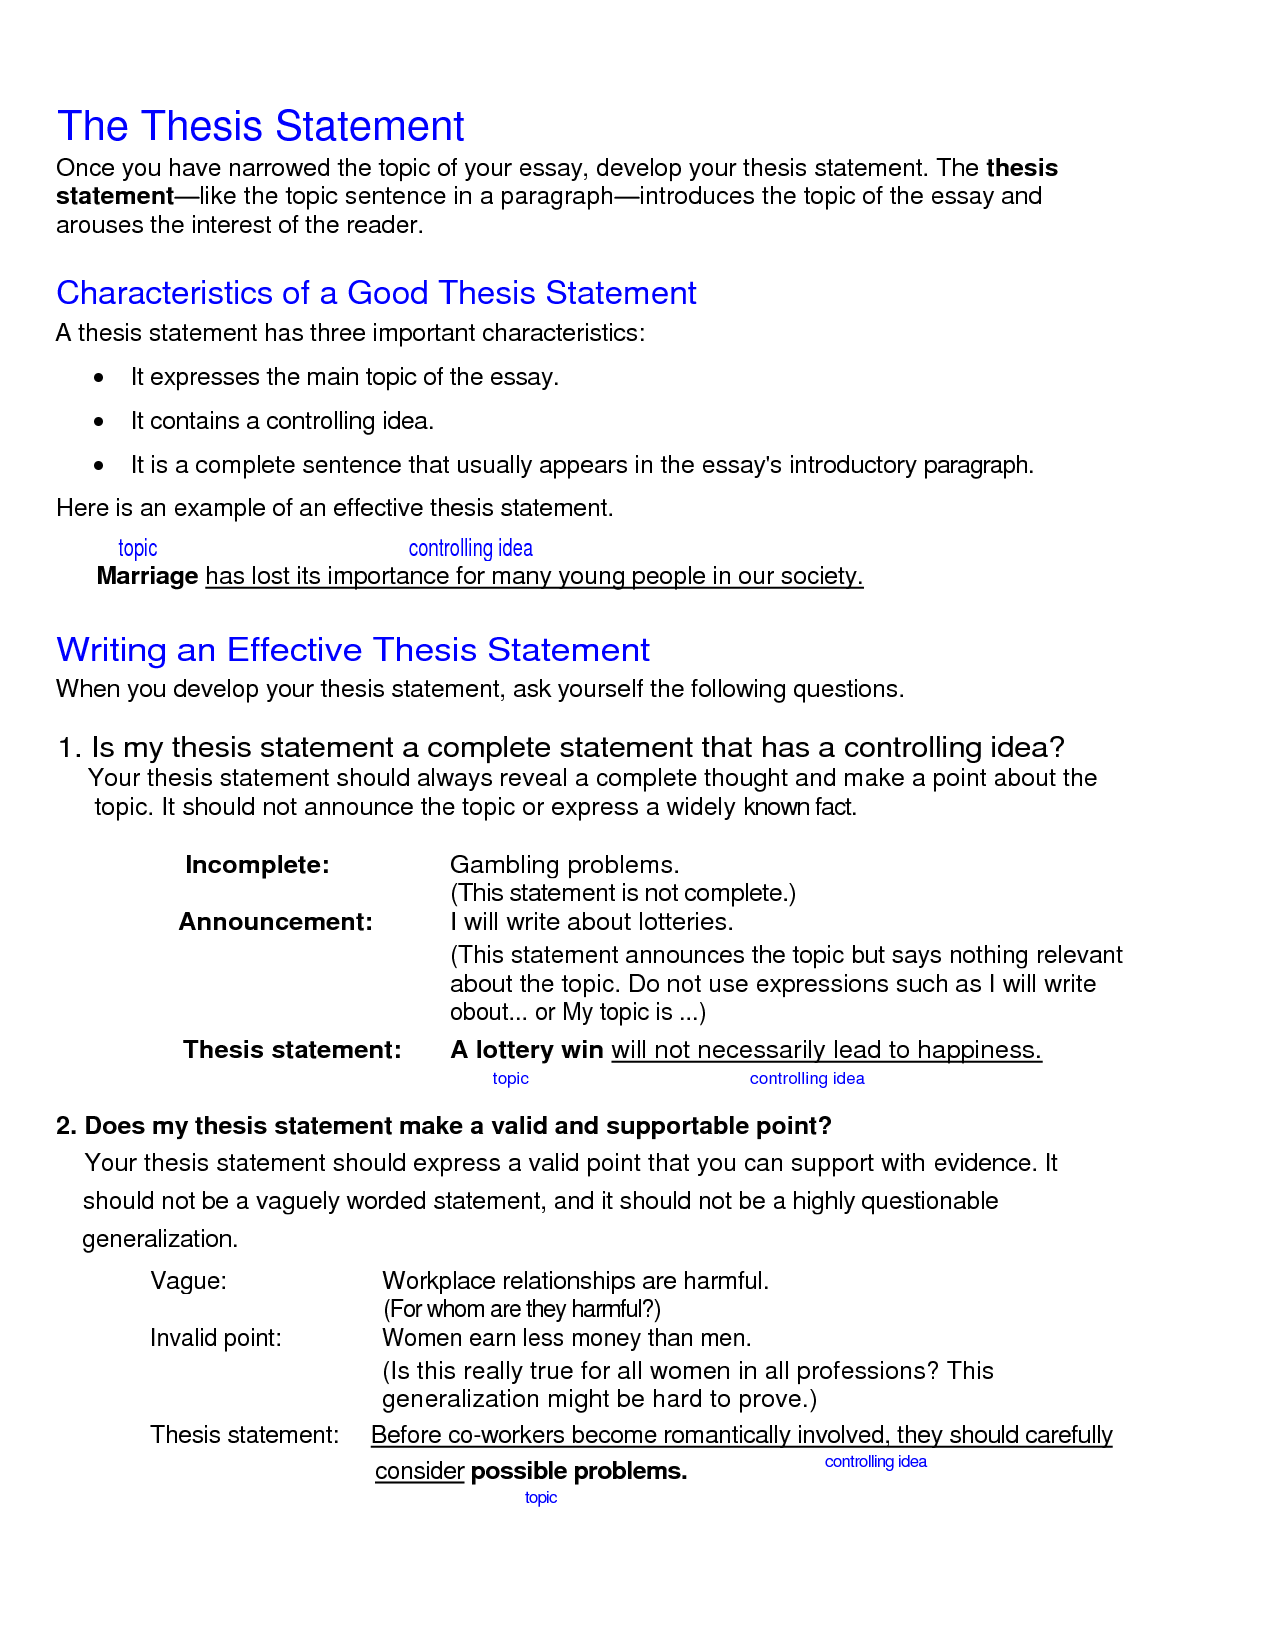 College Thesis Template  Google Search  Coursework  Best Essay  College Thesis Template  Google Search